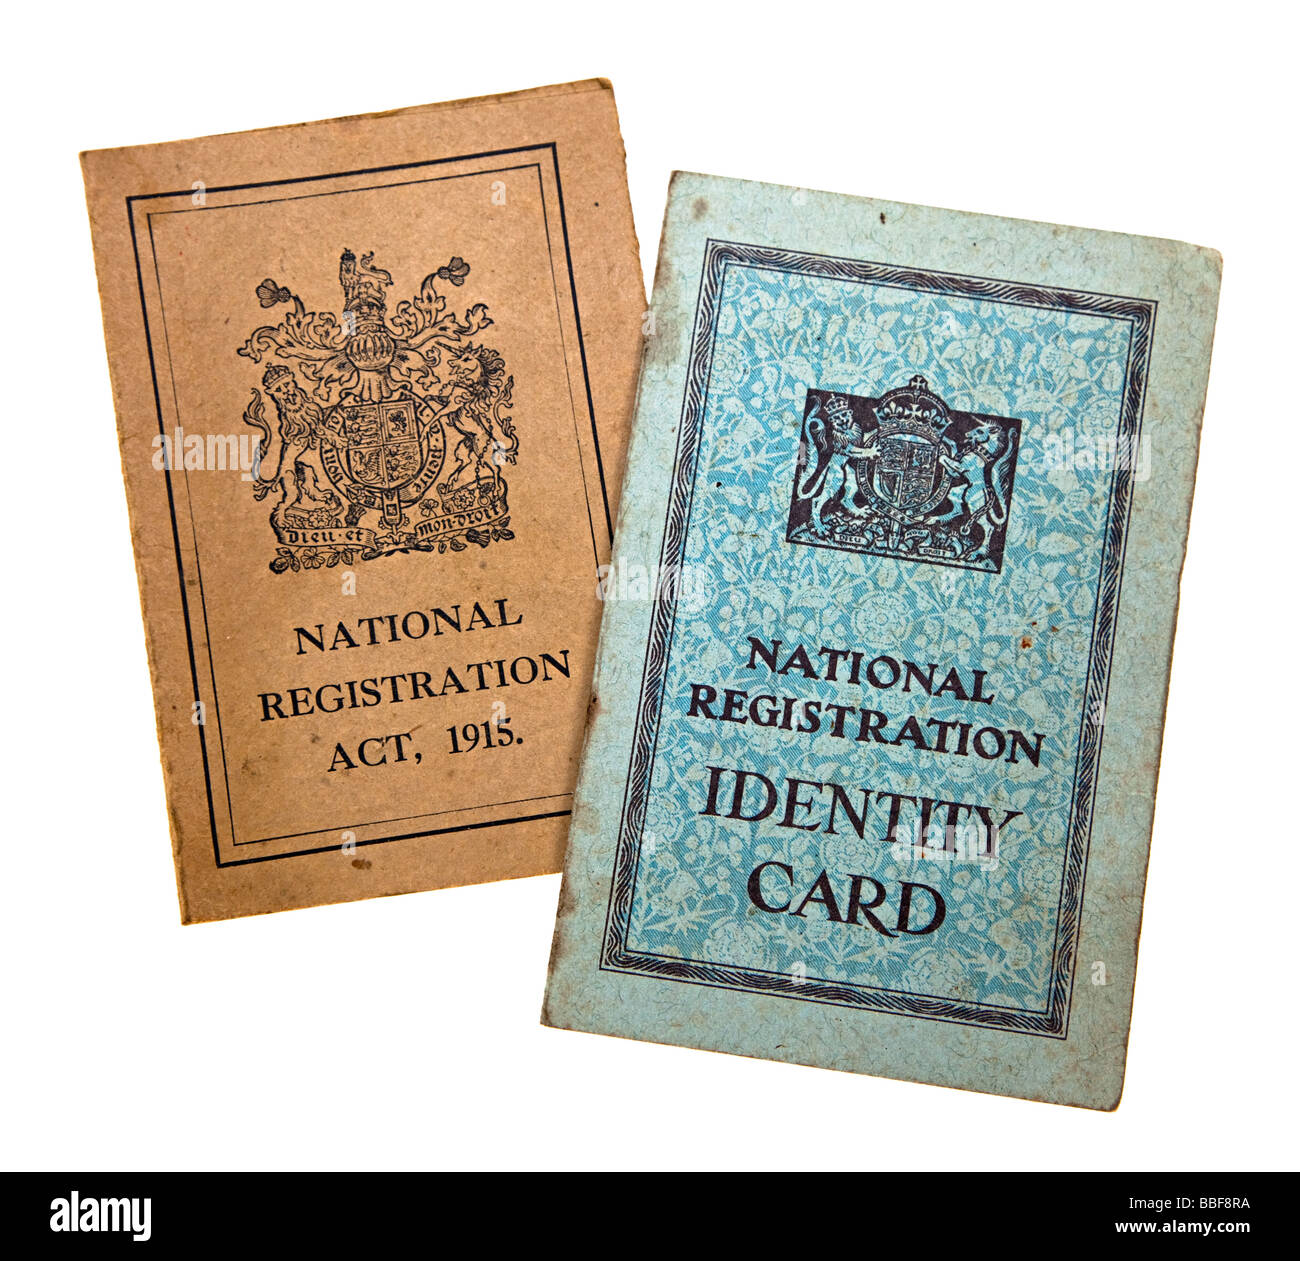 National identity cards issued during first and second world wars UK - Stock Image